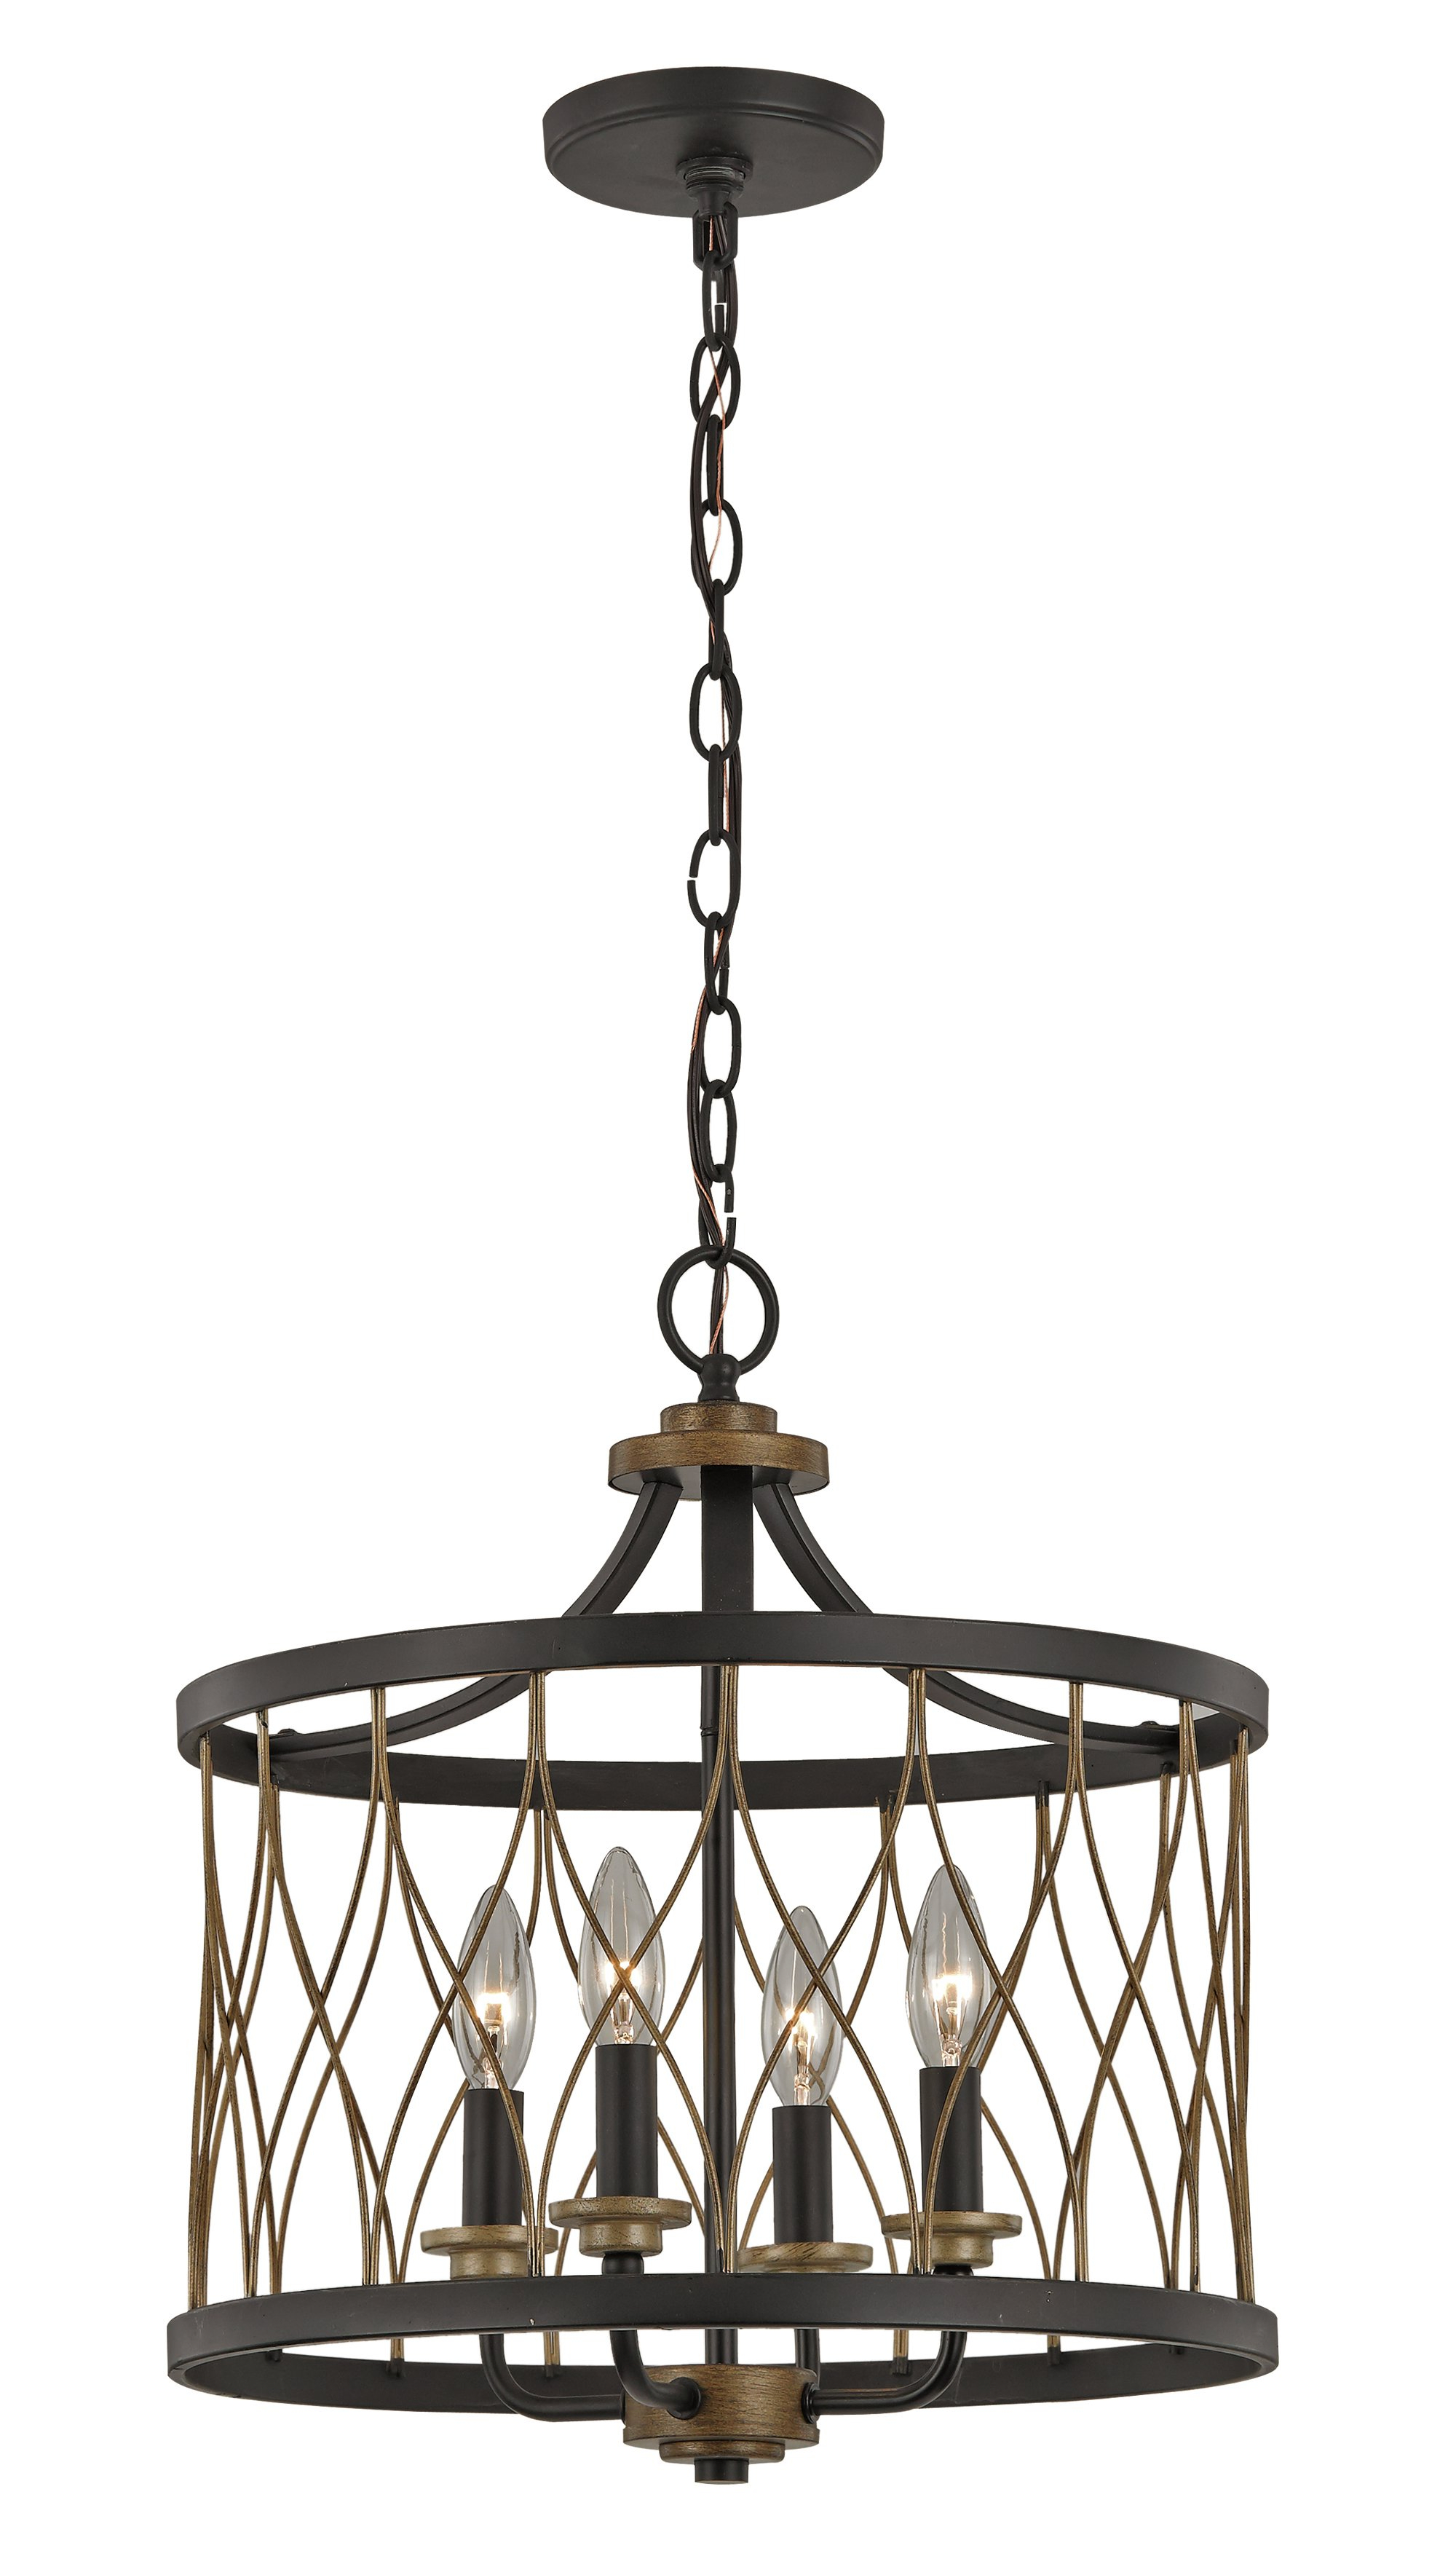 Emaria 3-Light Single Drum Pendants with regard to Most Recent Drum Pendant With Chain